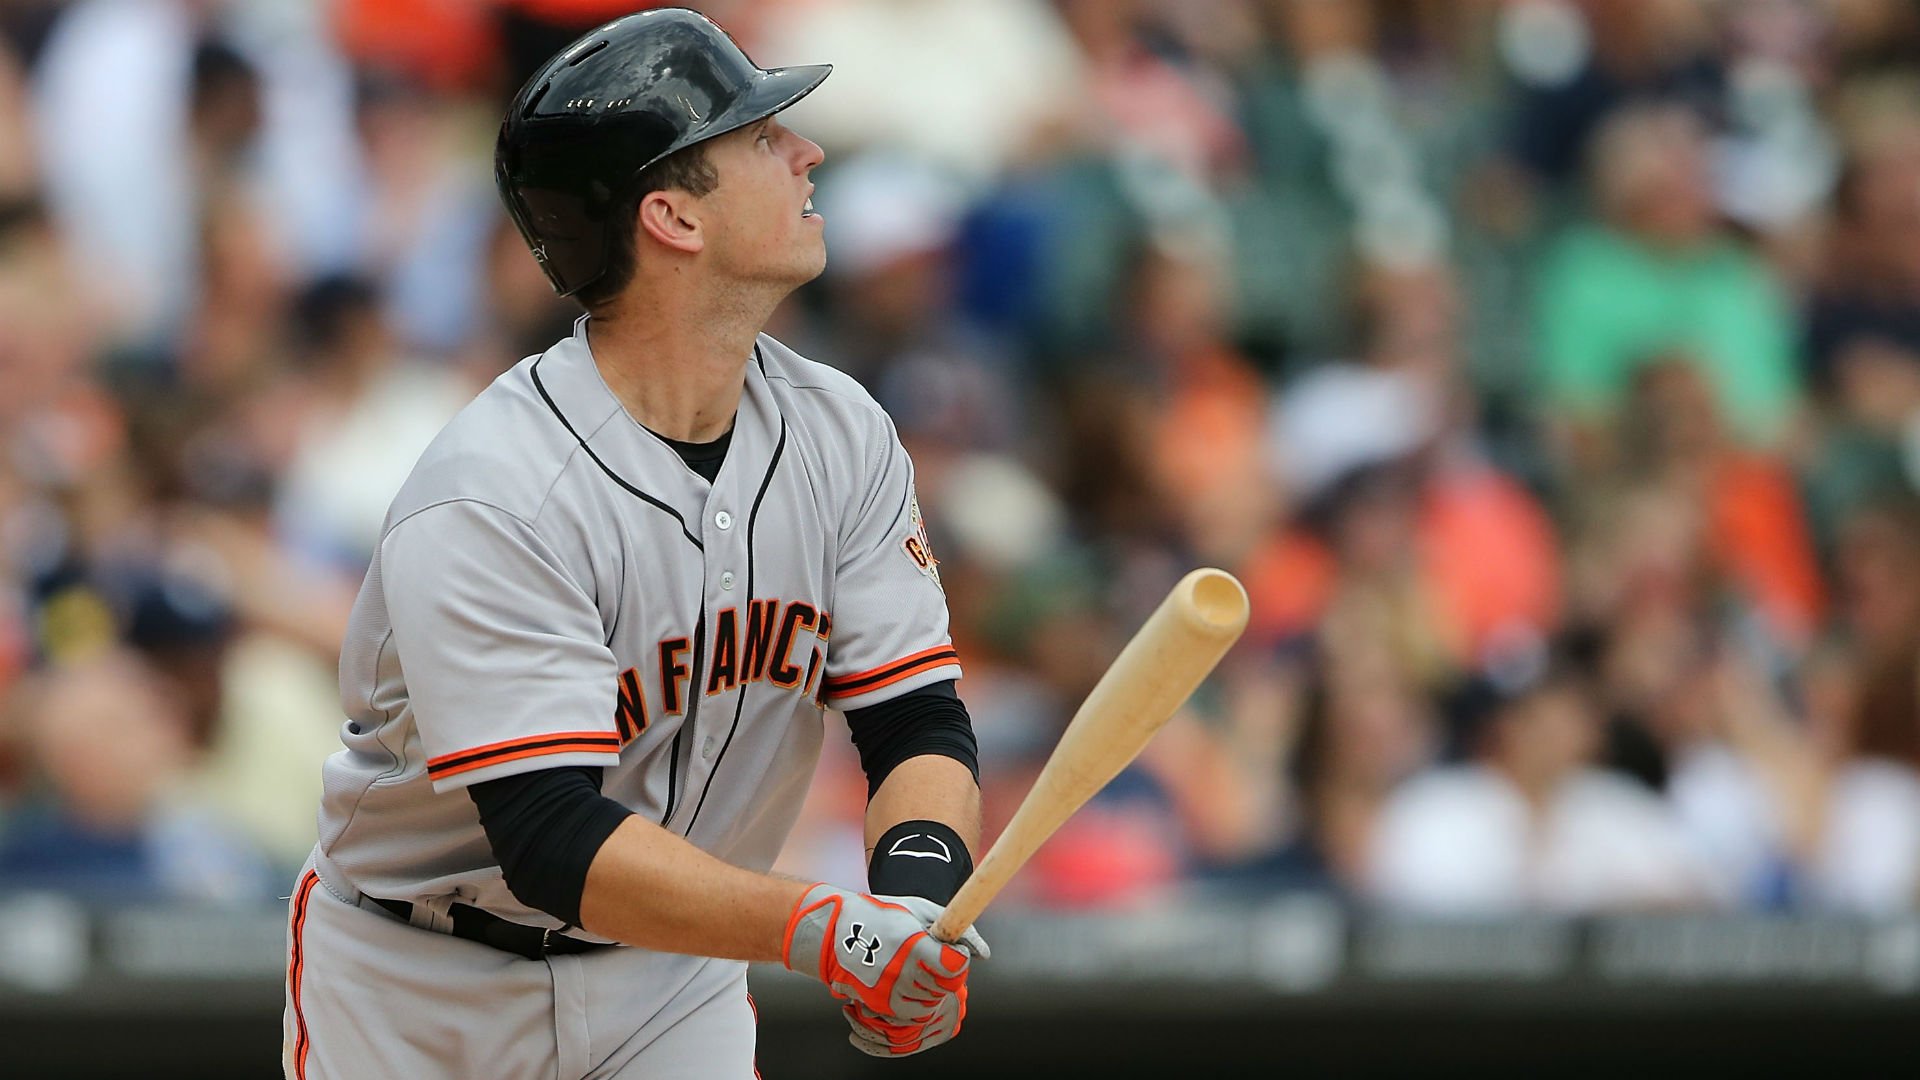 Buster-Posey-020315-Getty-FTR